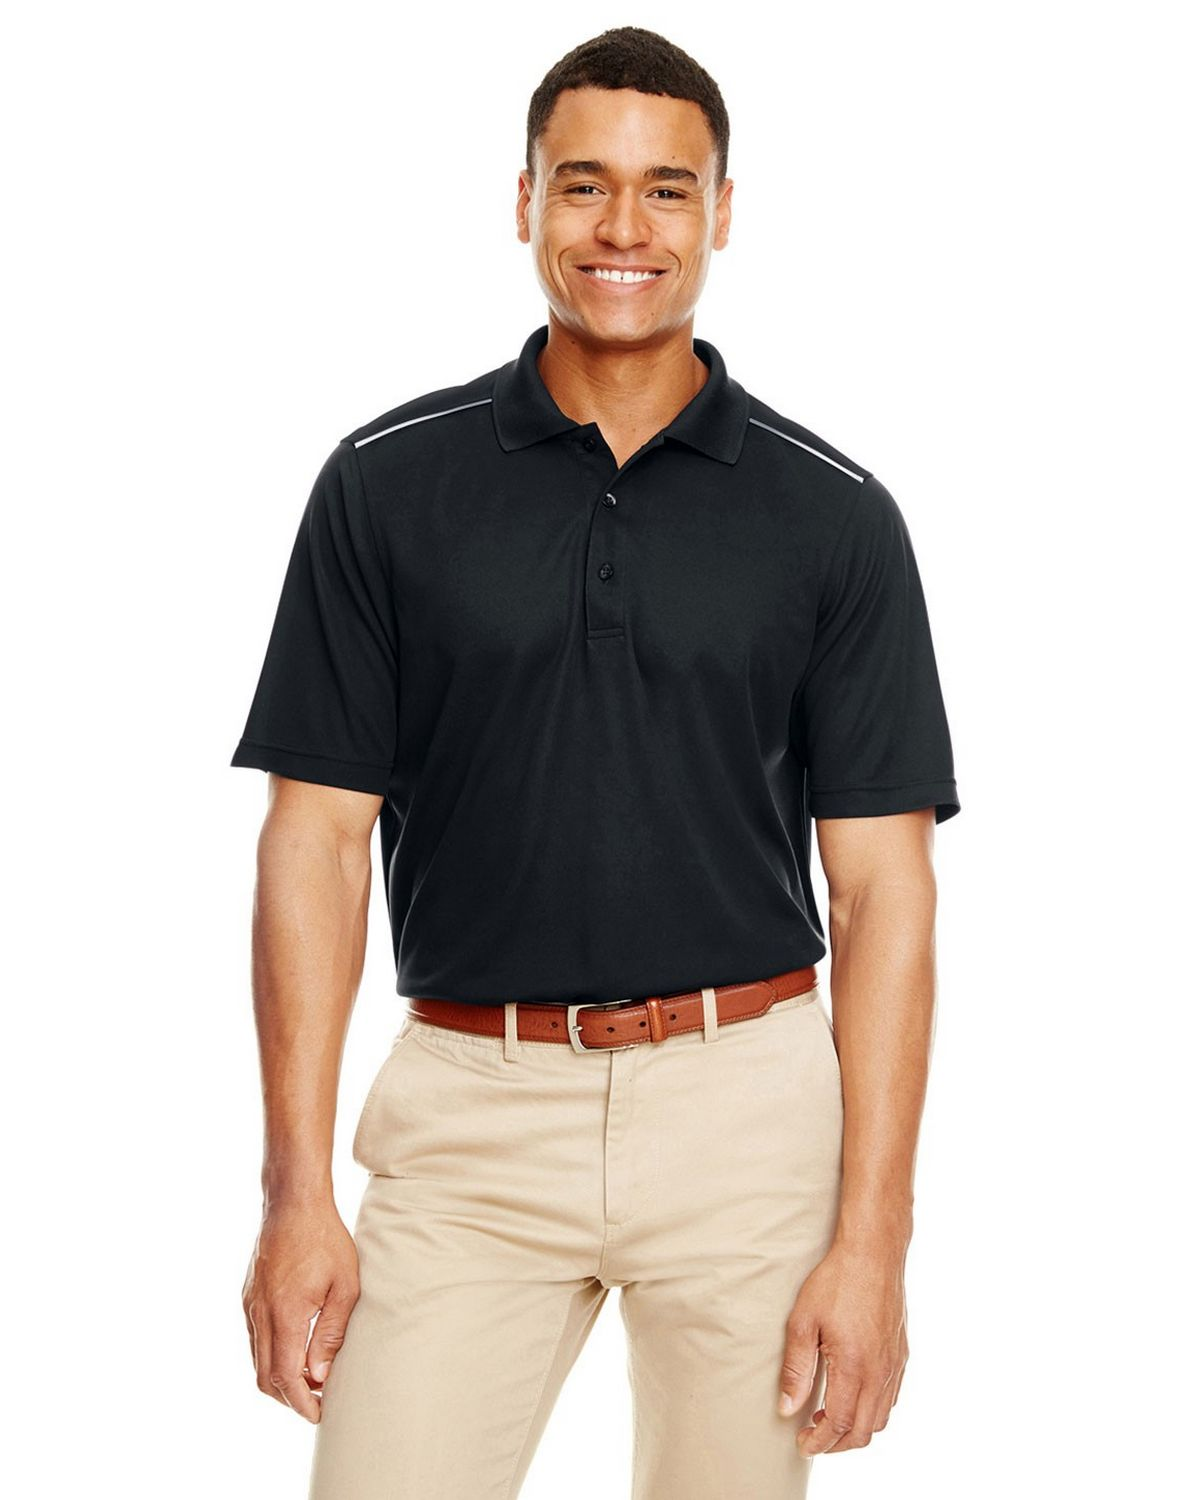 Core365 88181R Mens Radiant Reflective Piping Performance Pique Polo Shirt